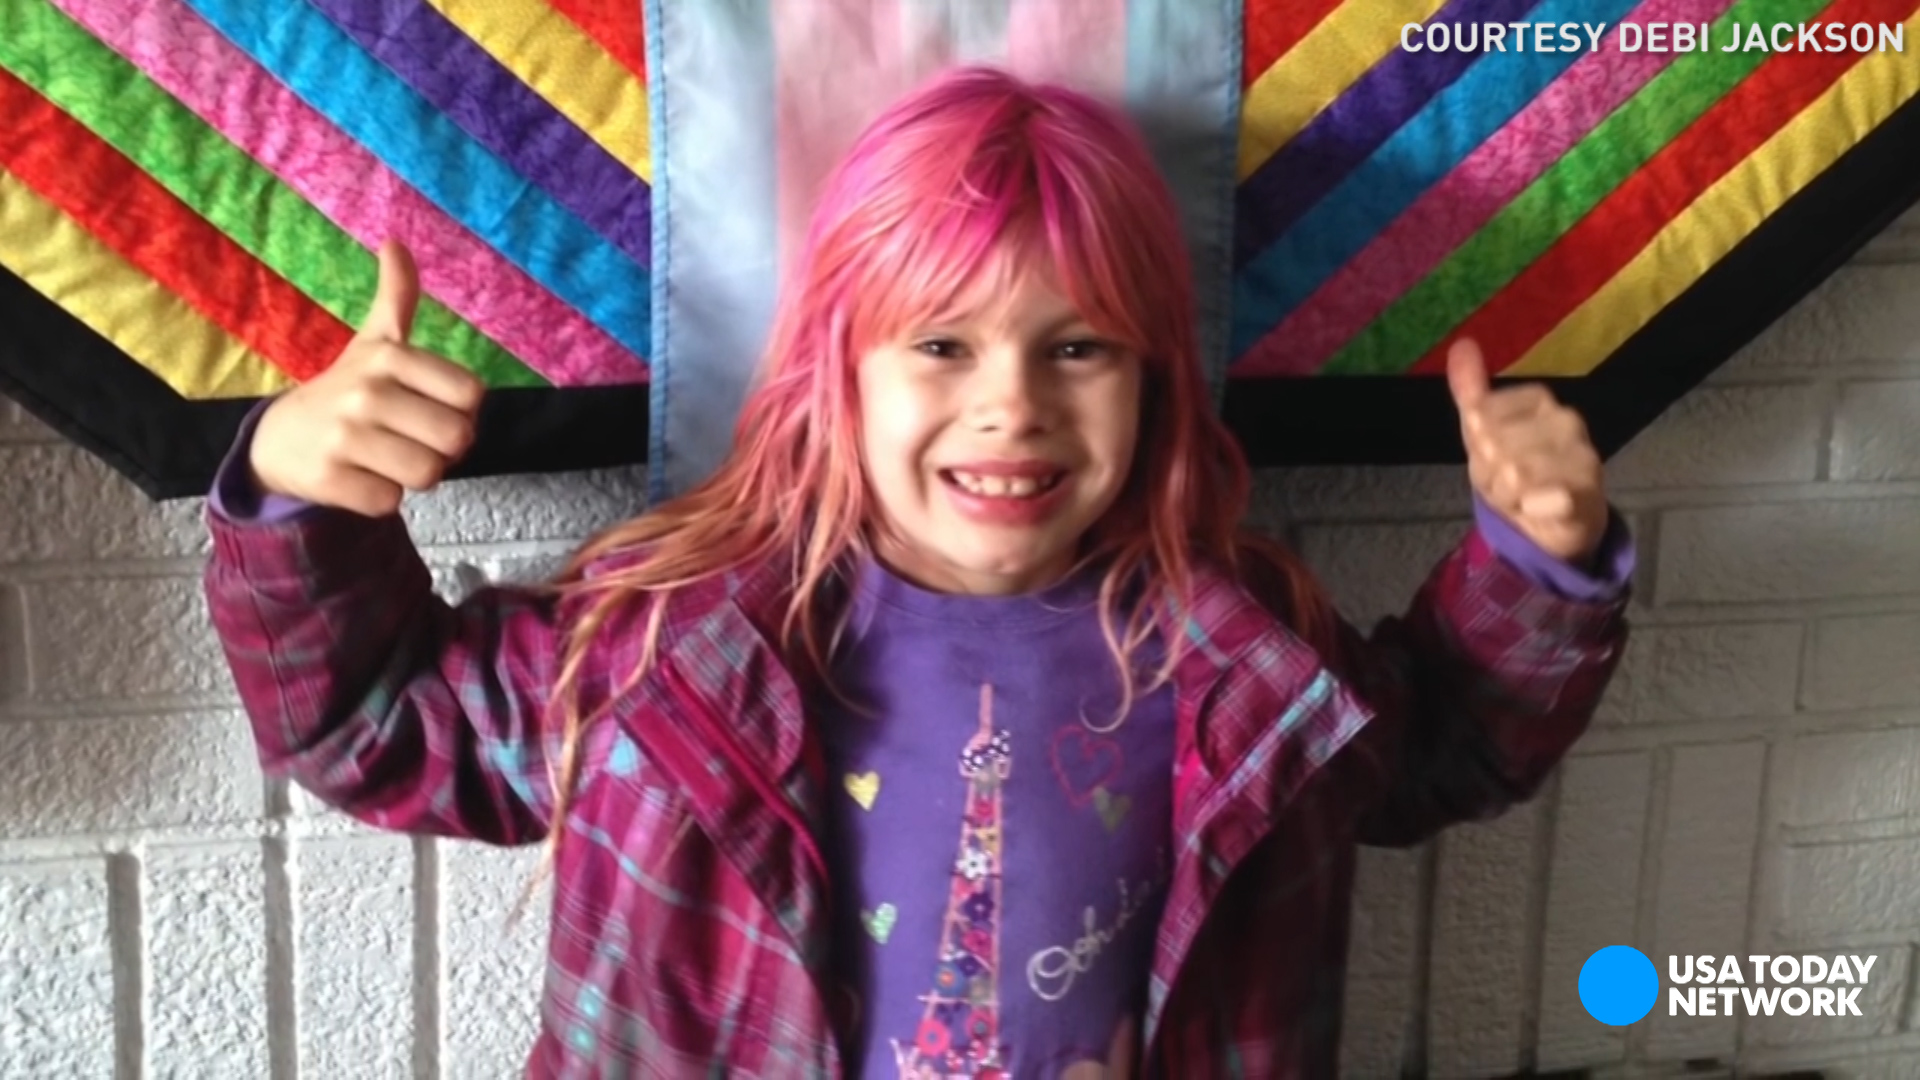 Cute Pink Nation Wallpaper Trans Girl 9 Makes History On National Geographic Cover